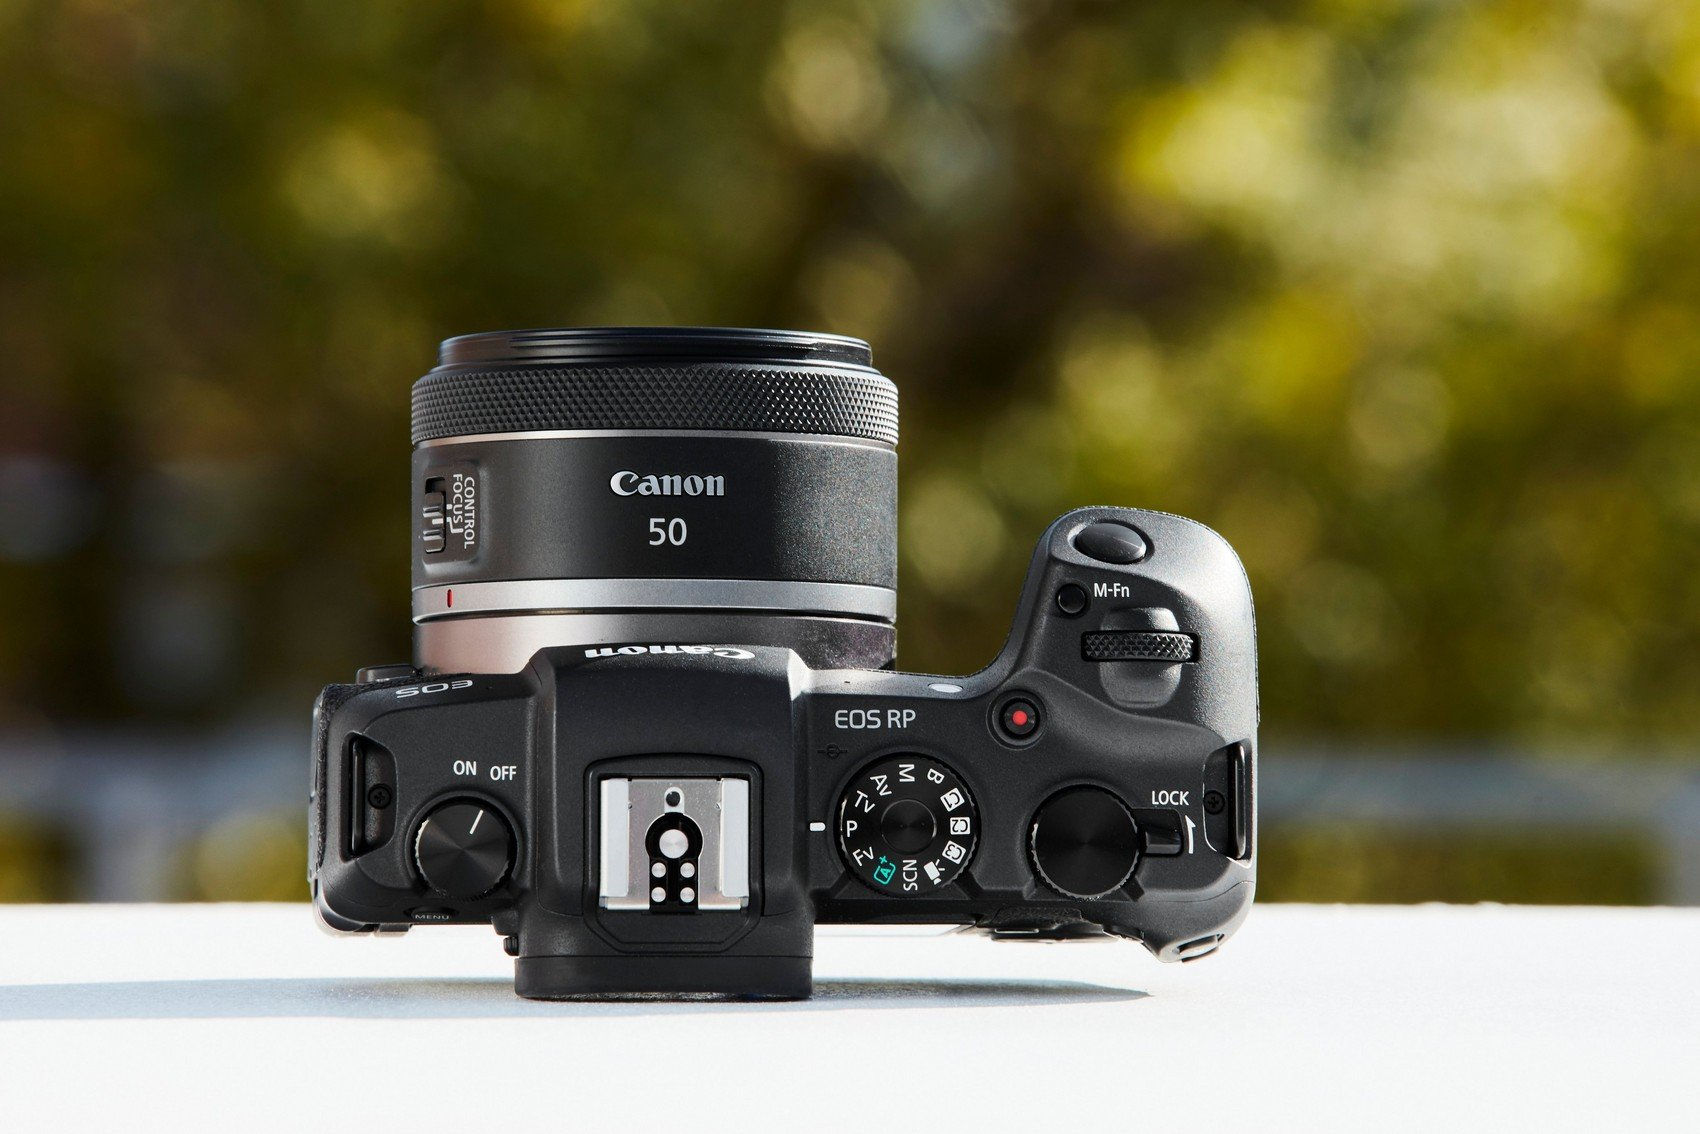 Canon RF 50mm F1.8 STM Review